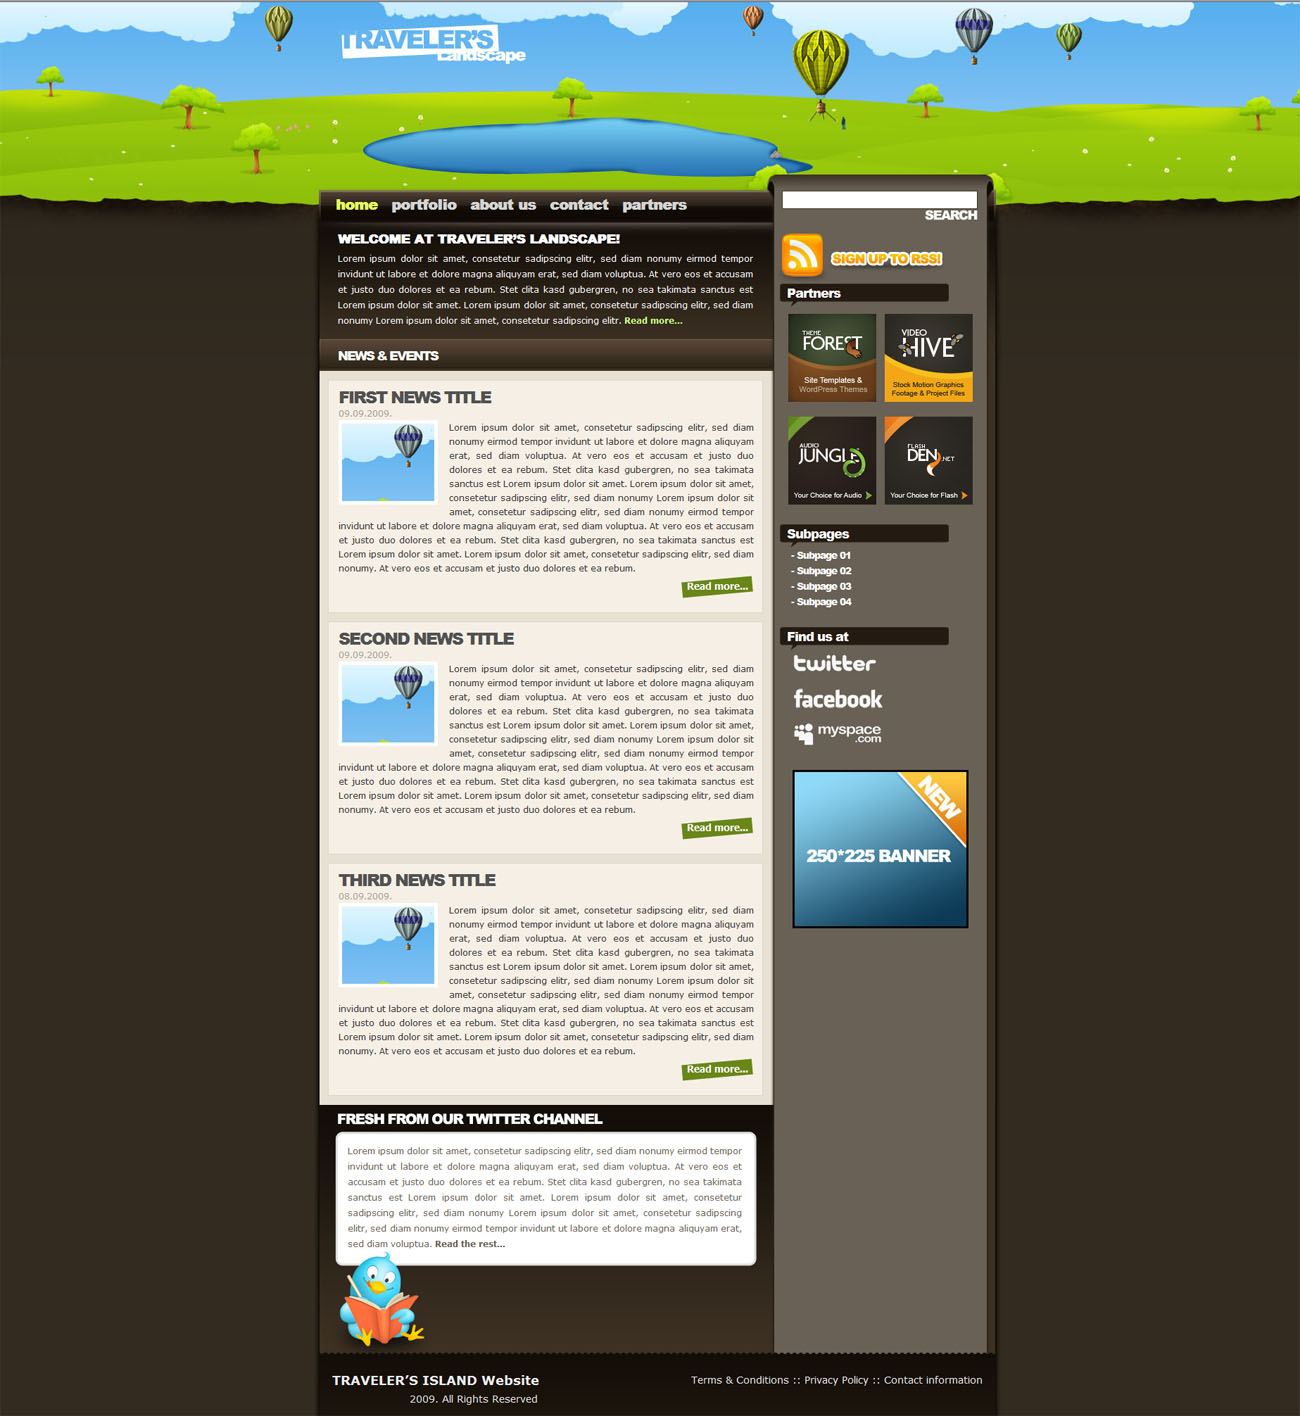 Traveler's Landscape XHTML drawn styled template